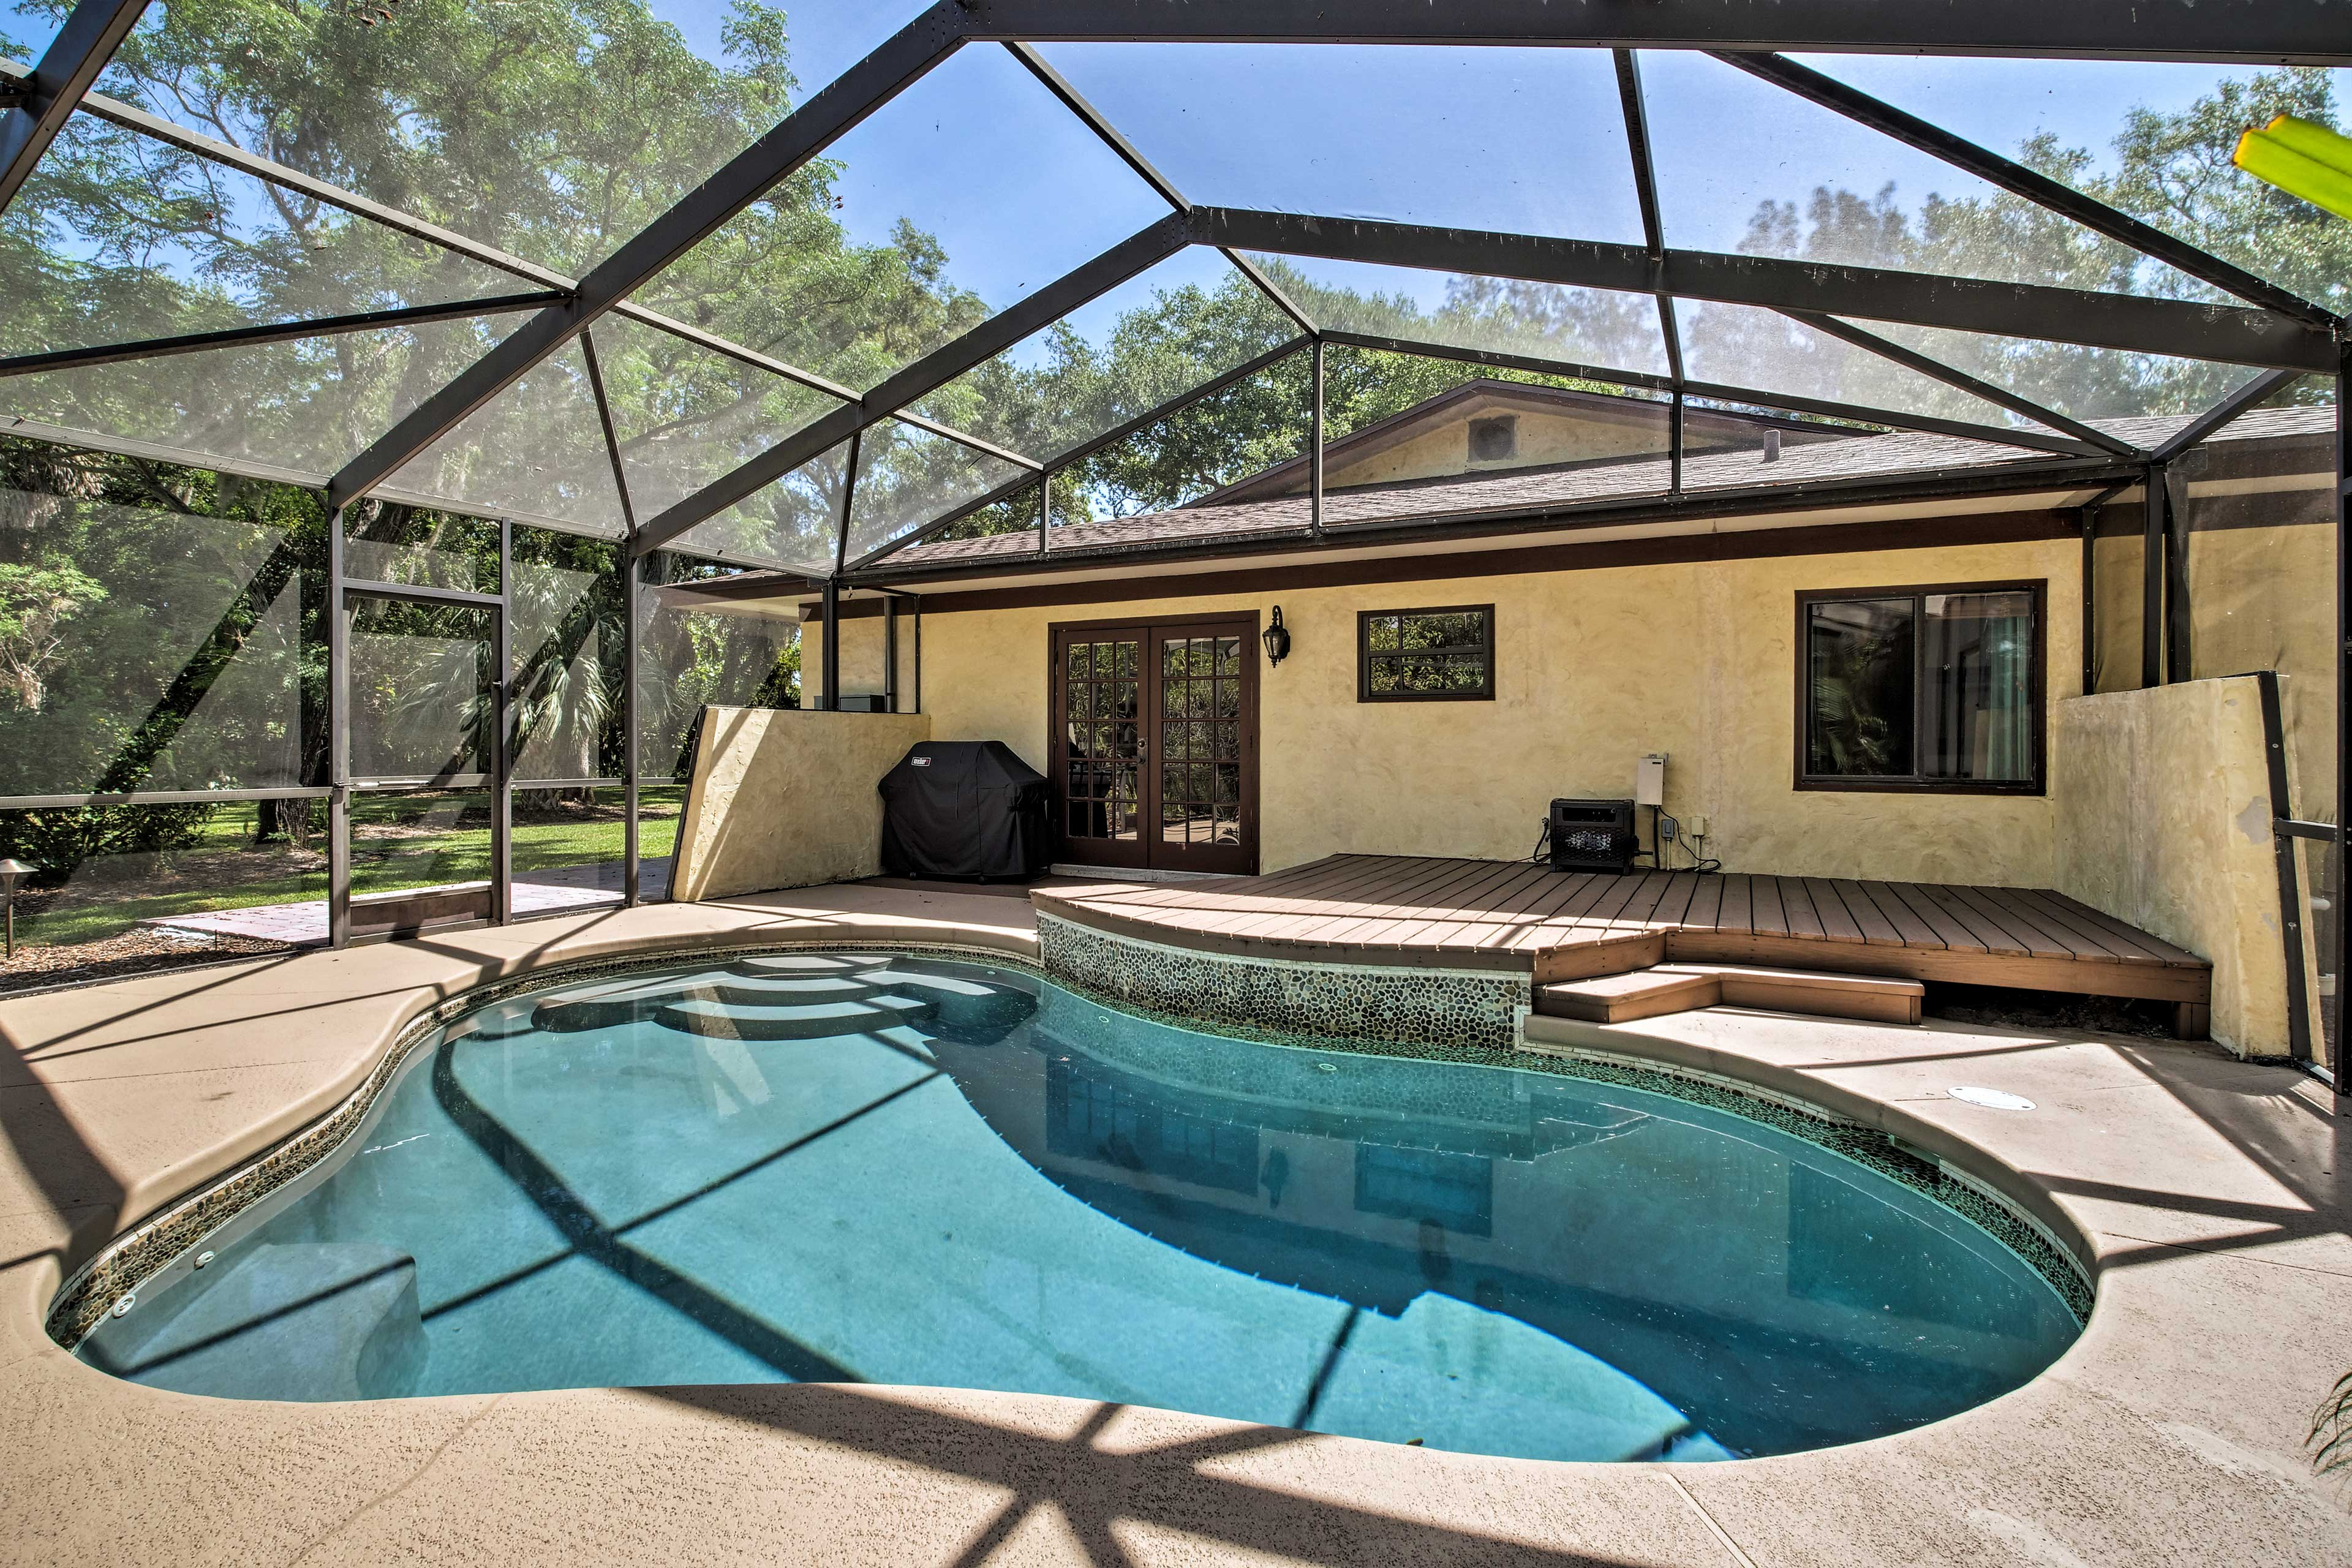 Up to 7 of you can escape to this Florida oasis, featuring a screened-in pool.